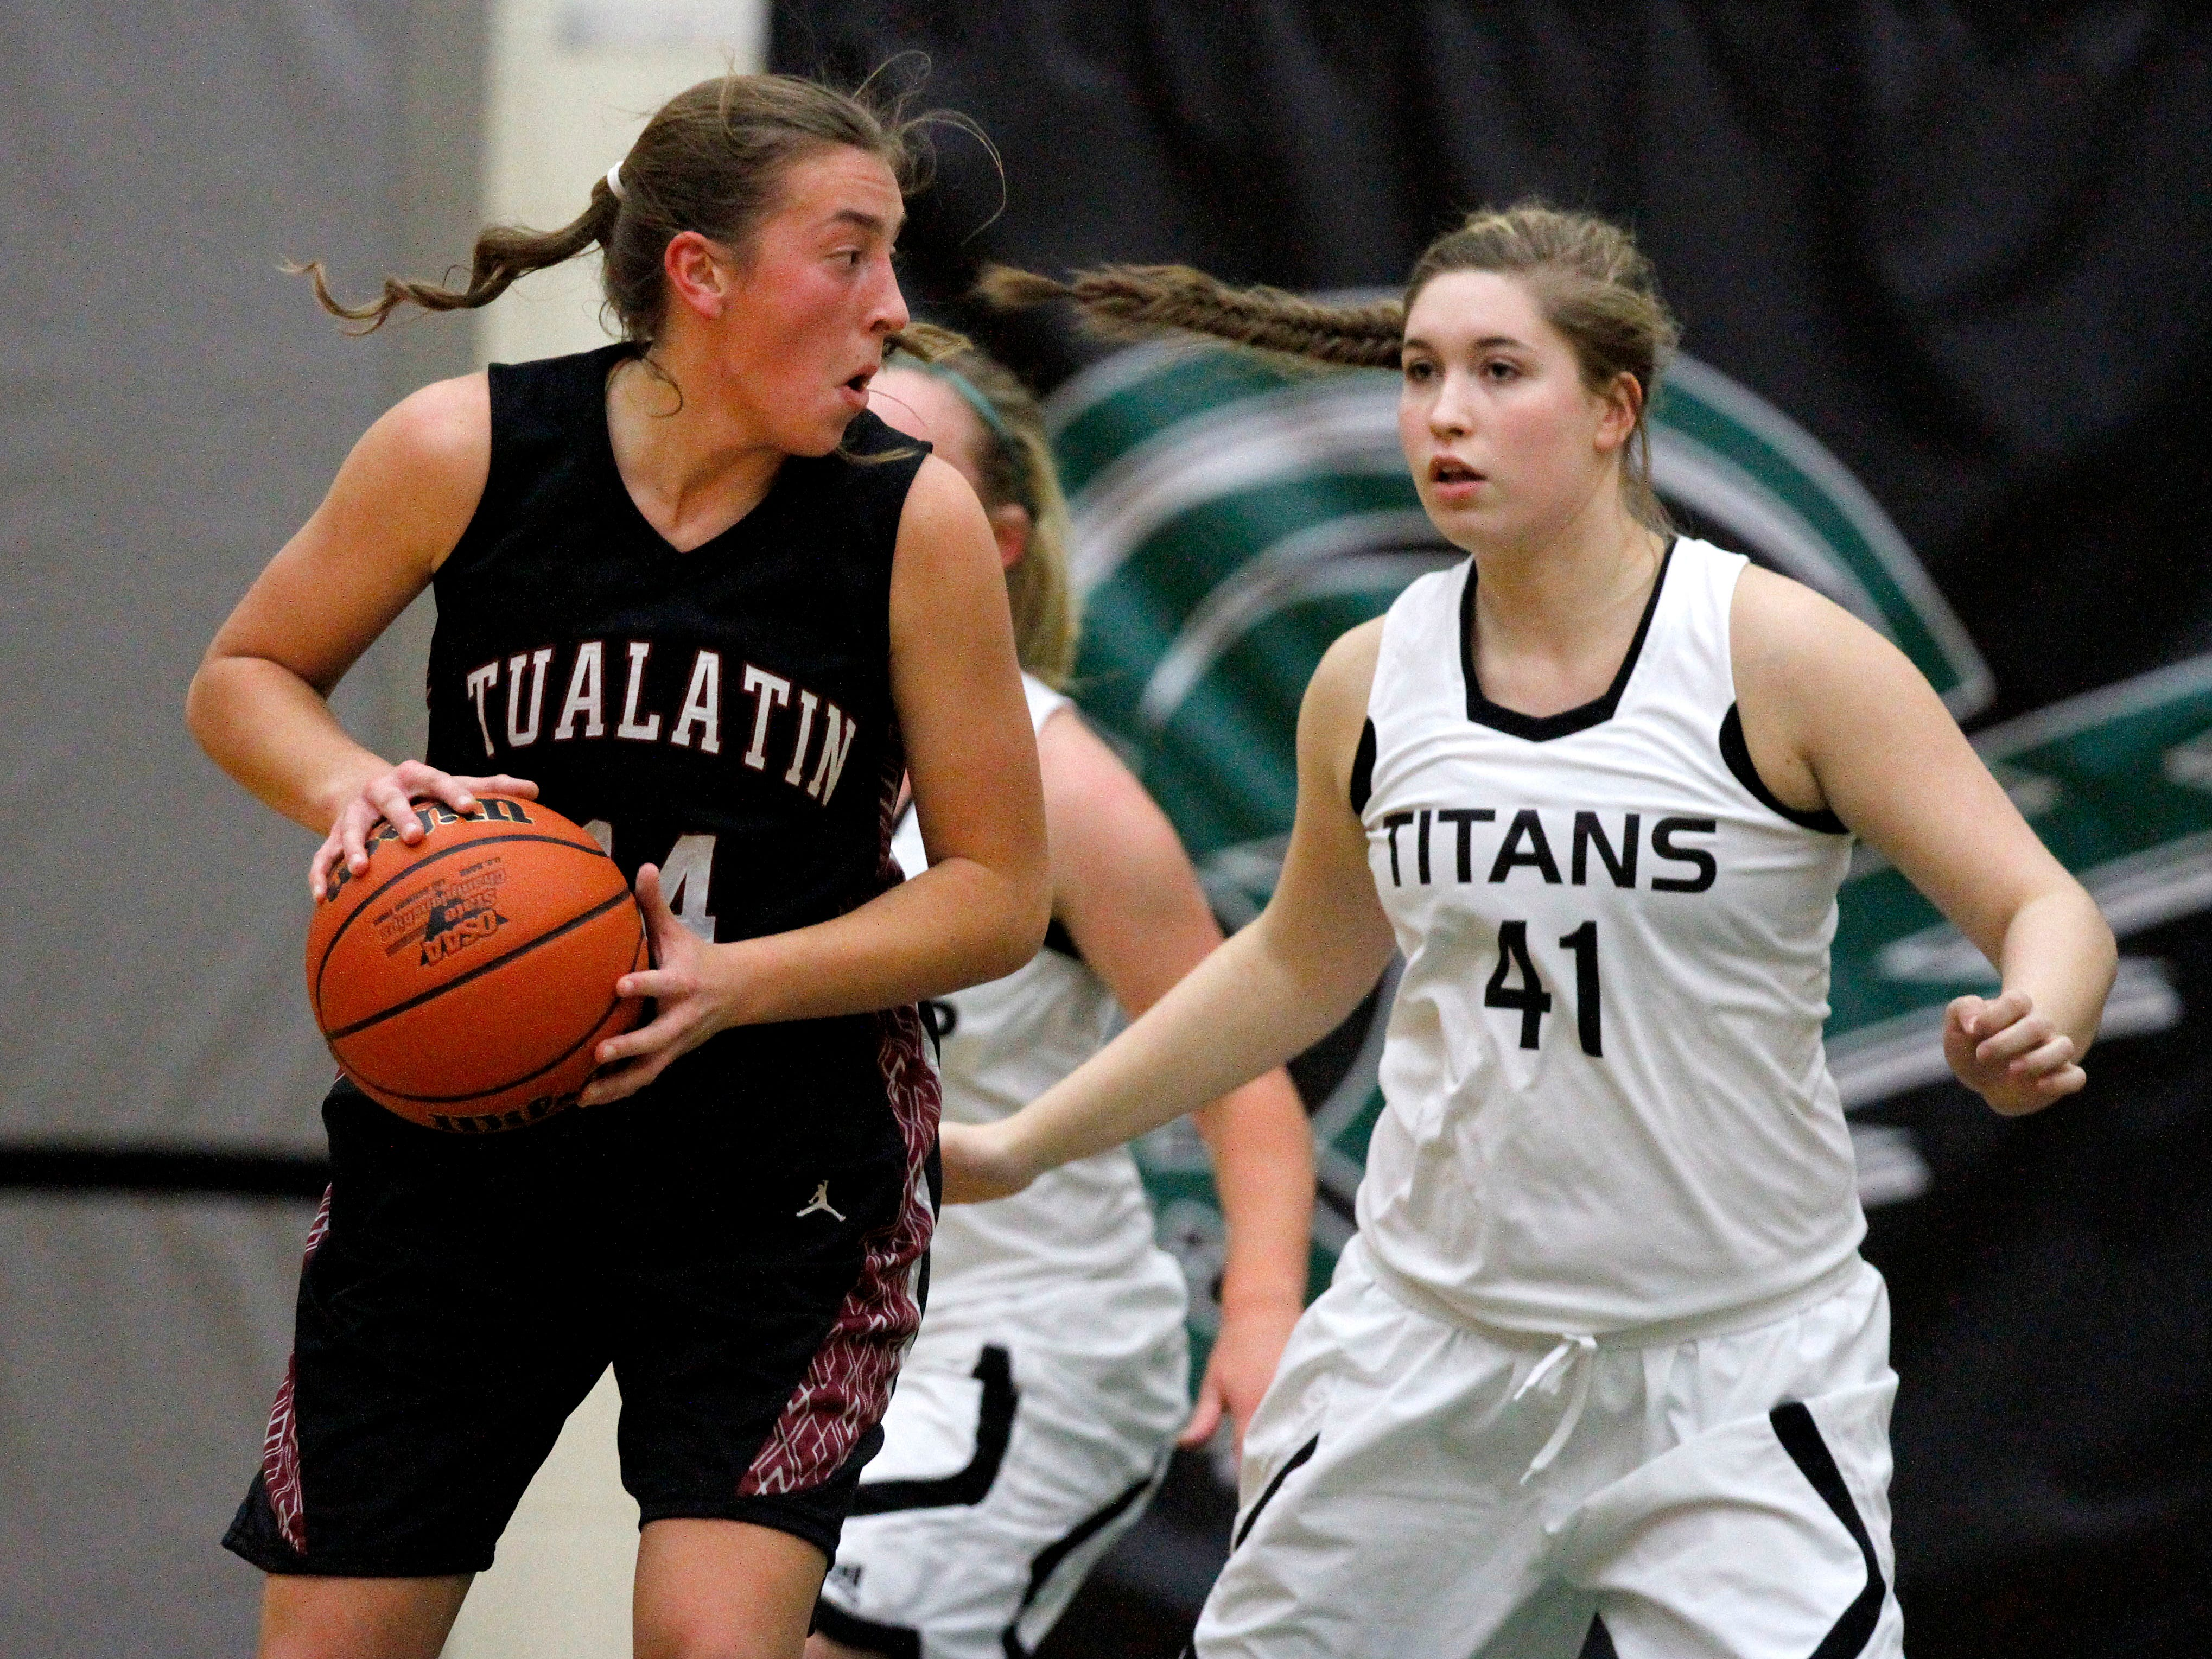 West Salem High School hosts Tualatin for their non-league game on Friday, Dec. 5, 2014, in Salem.